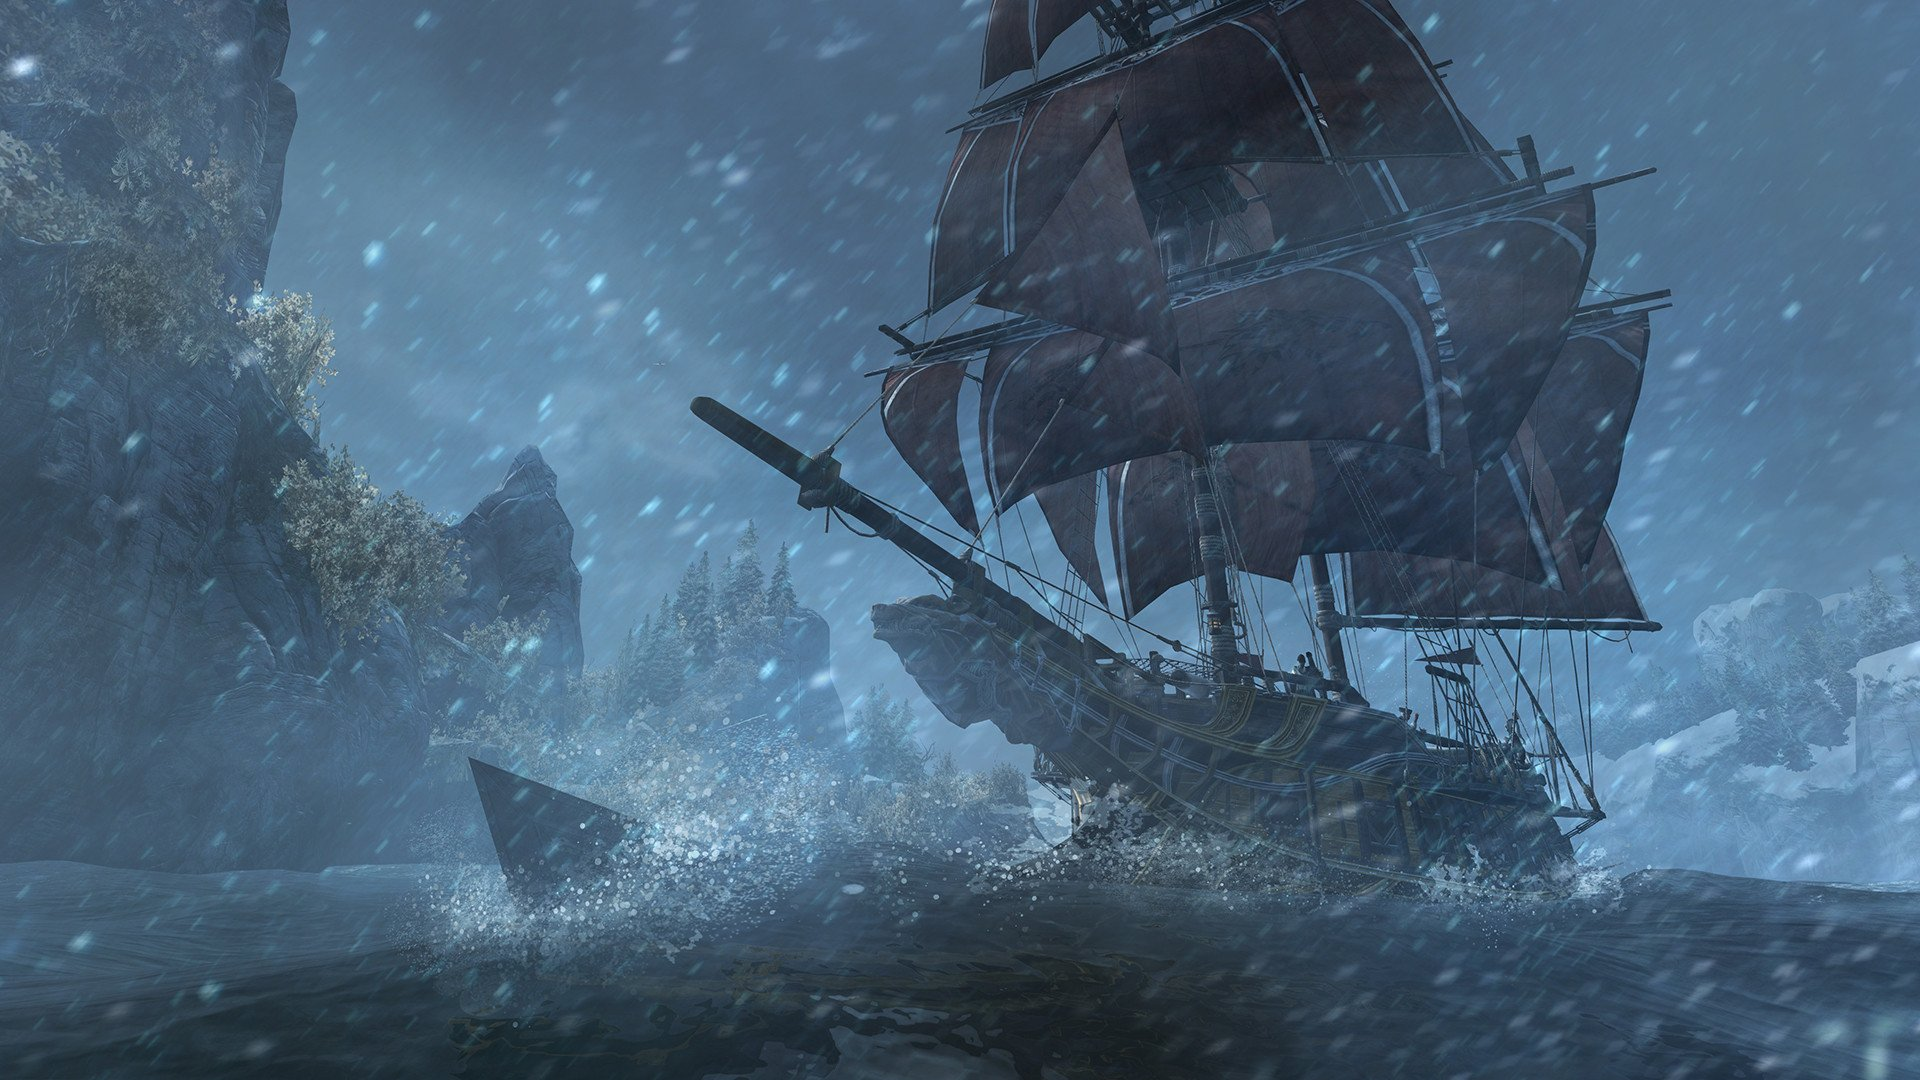 Best Boat Covers >> Assassin's Creed: Rogue HD Wallpaper | Background Image | 1920x1080 | ID:549682 - Wallpaper Abyss